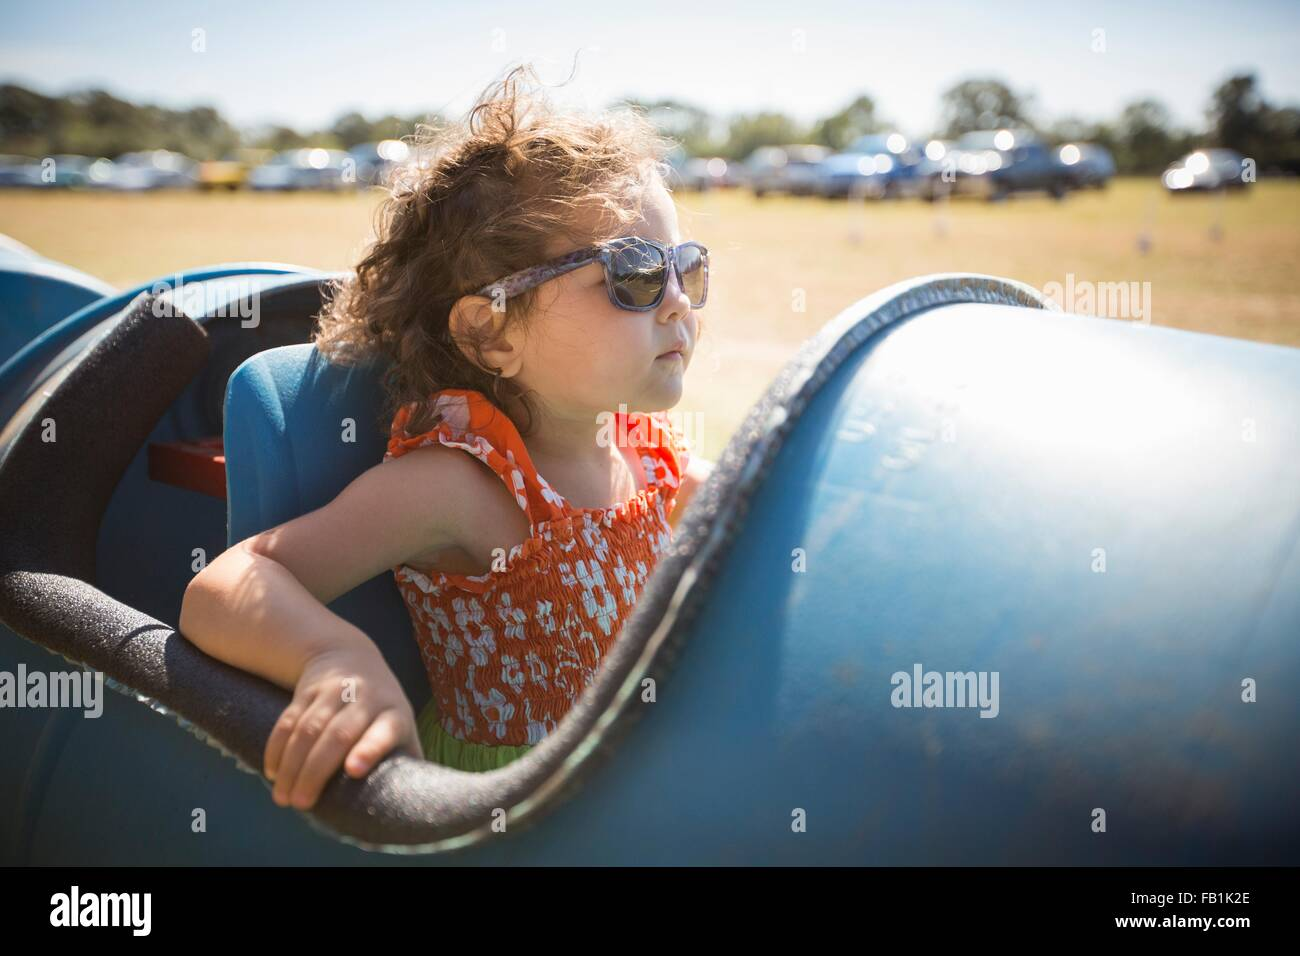 Girl sitting in barrel cart, wearing sunglasses looking away - Stock Image